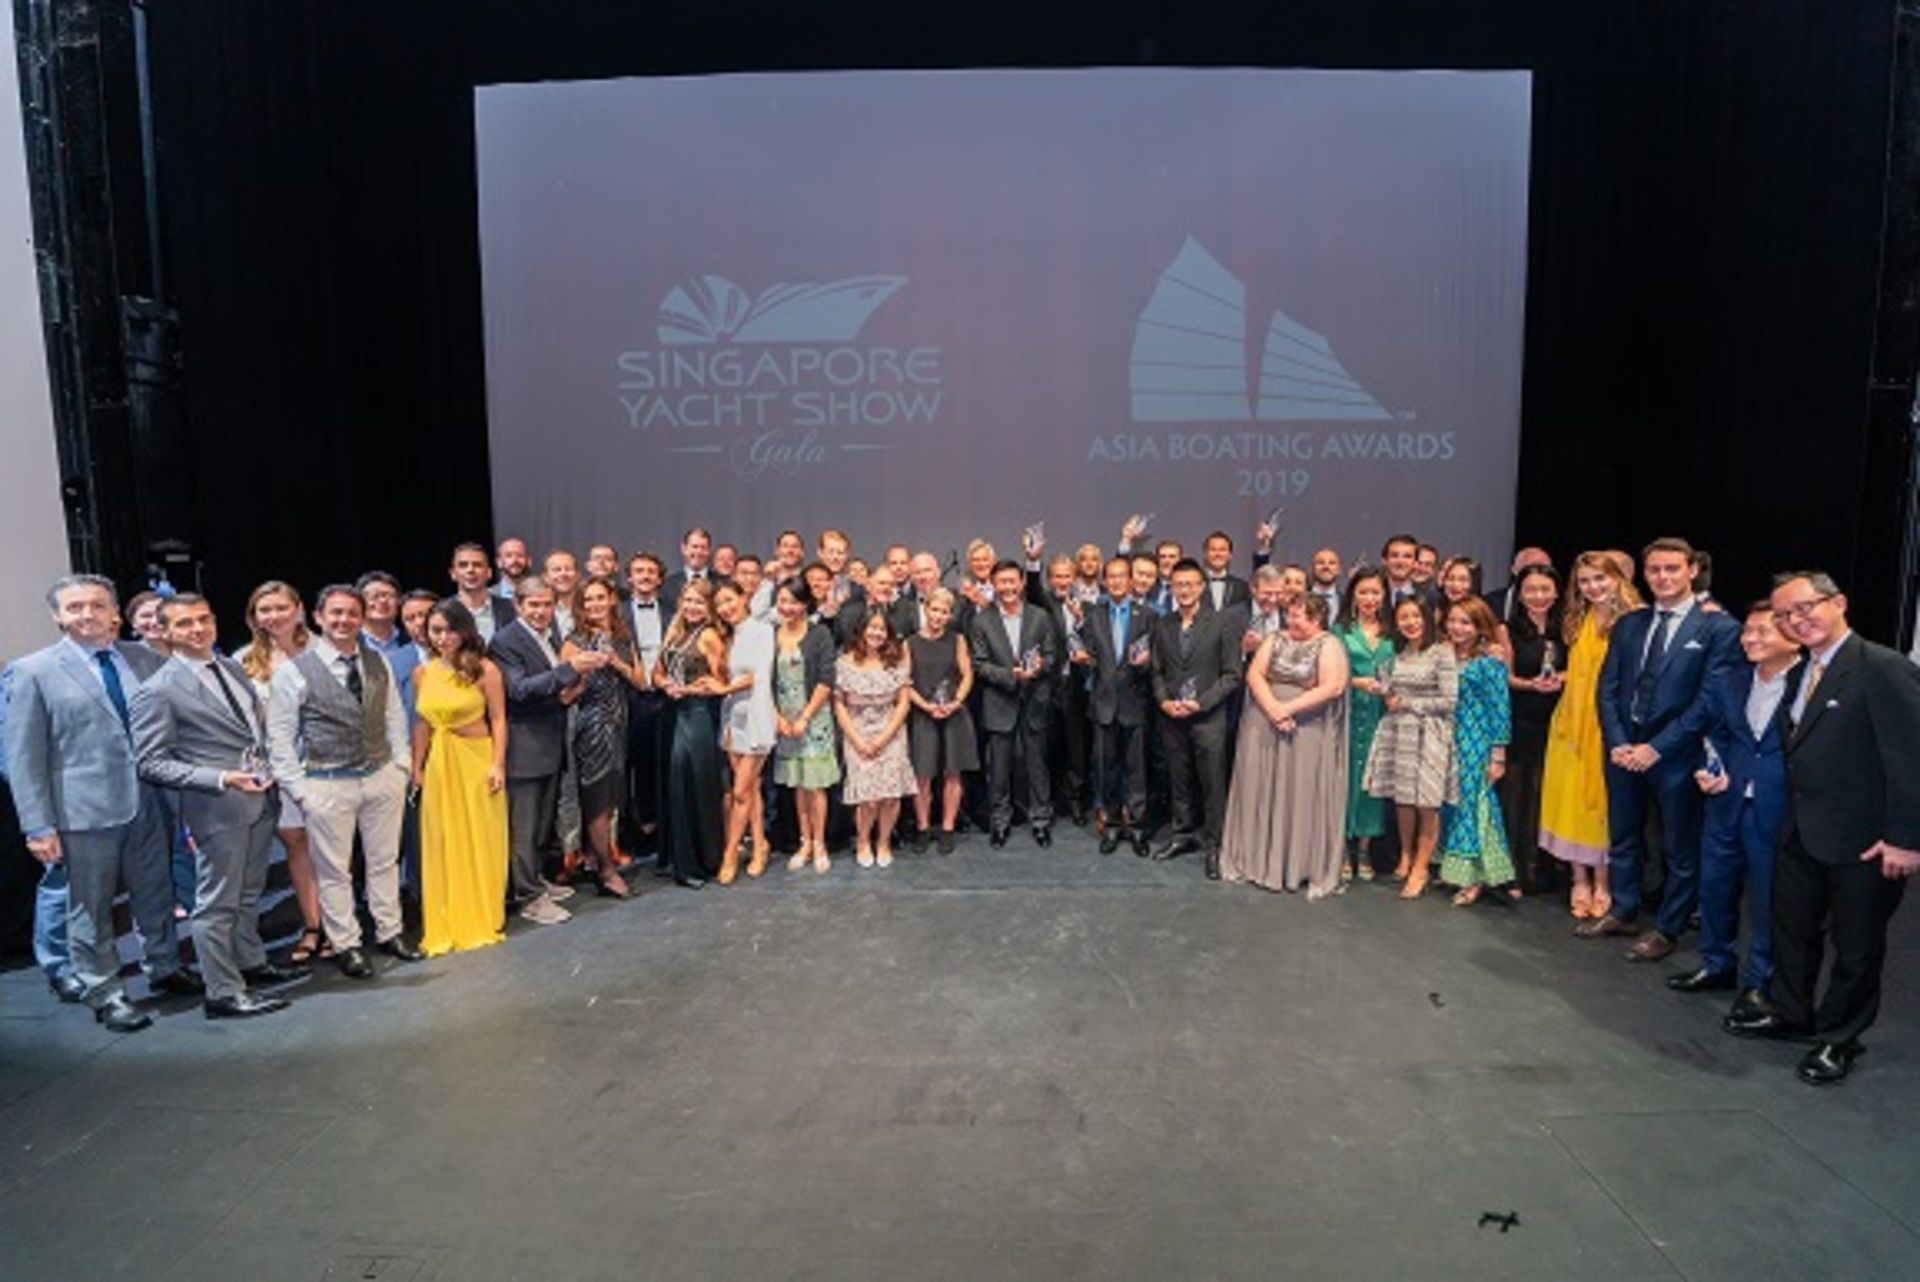 """The new PRESTIGE 520 S awarded at the """"Asia Boating Awards 2019"""""""